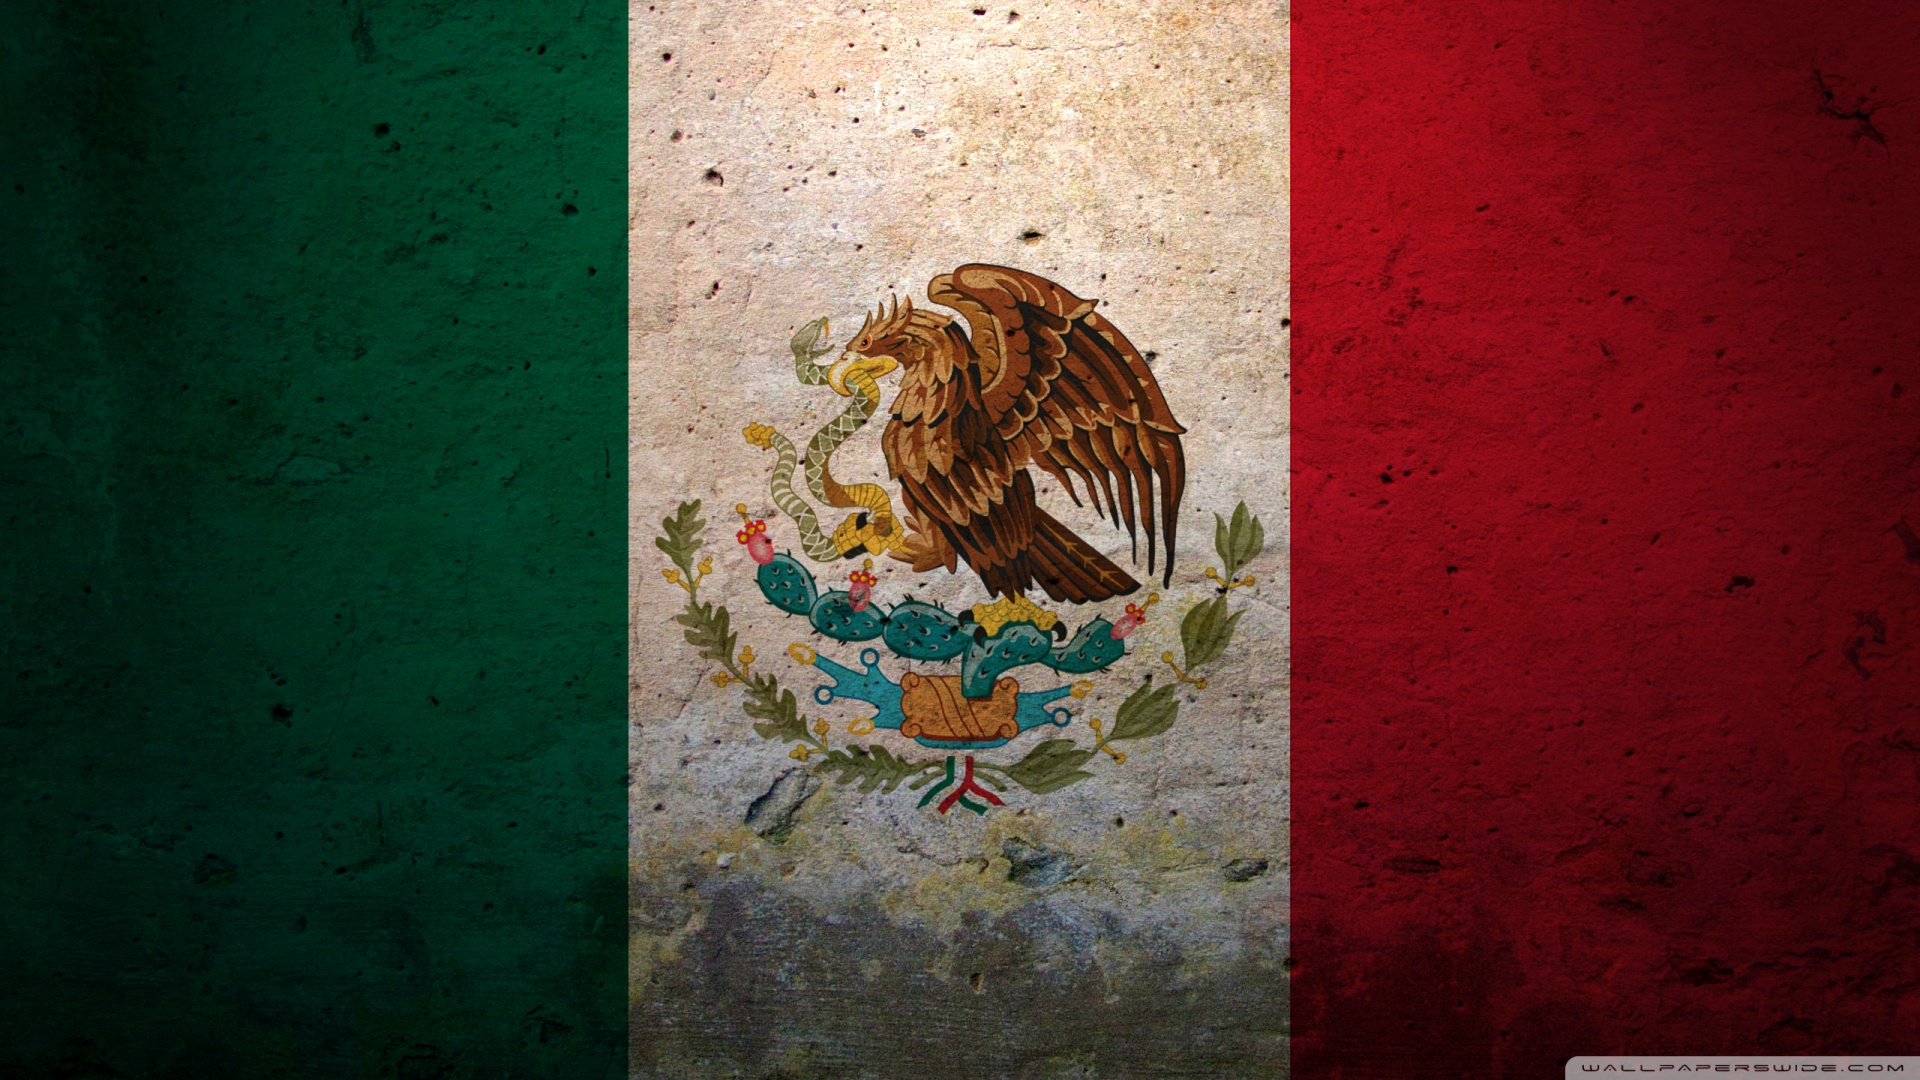 Cool Mexico Wallpaper Hd Pictures Wallpapers Amagico Cool 1920x1080